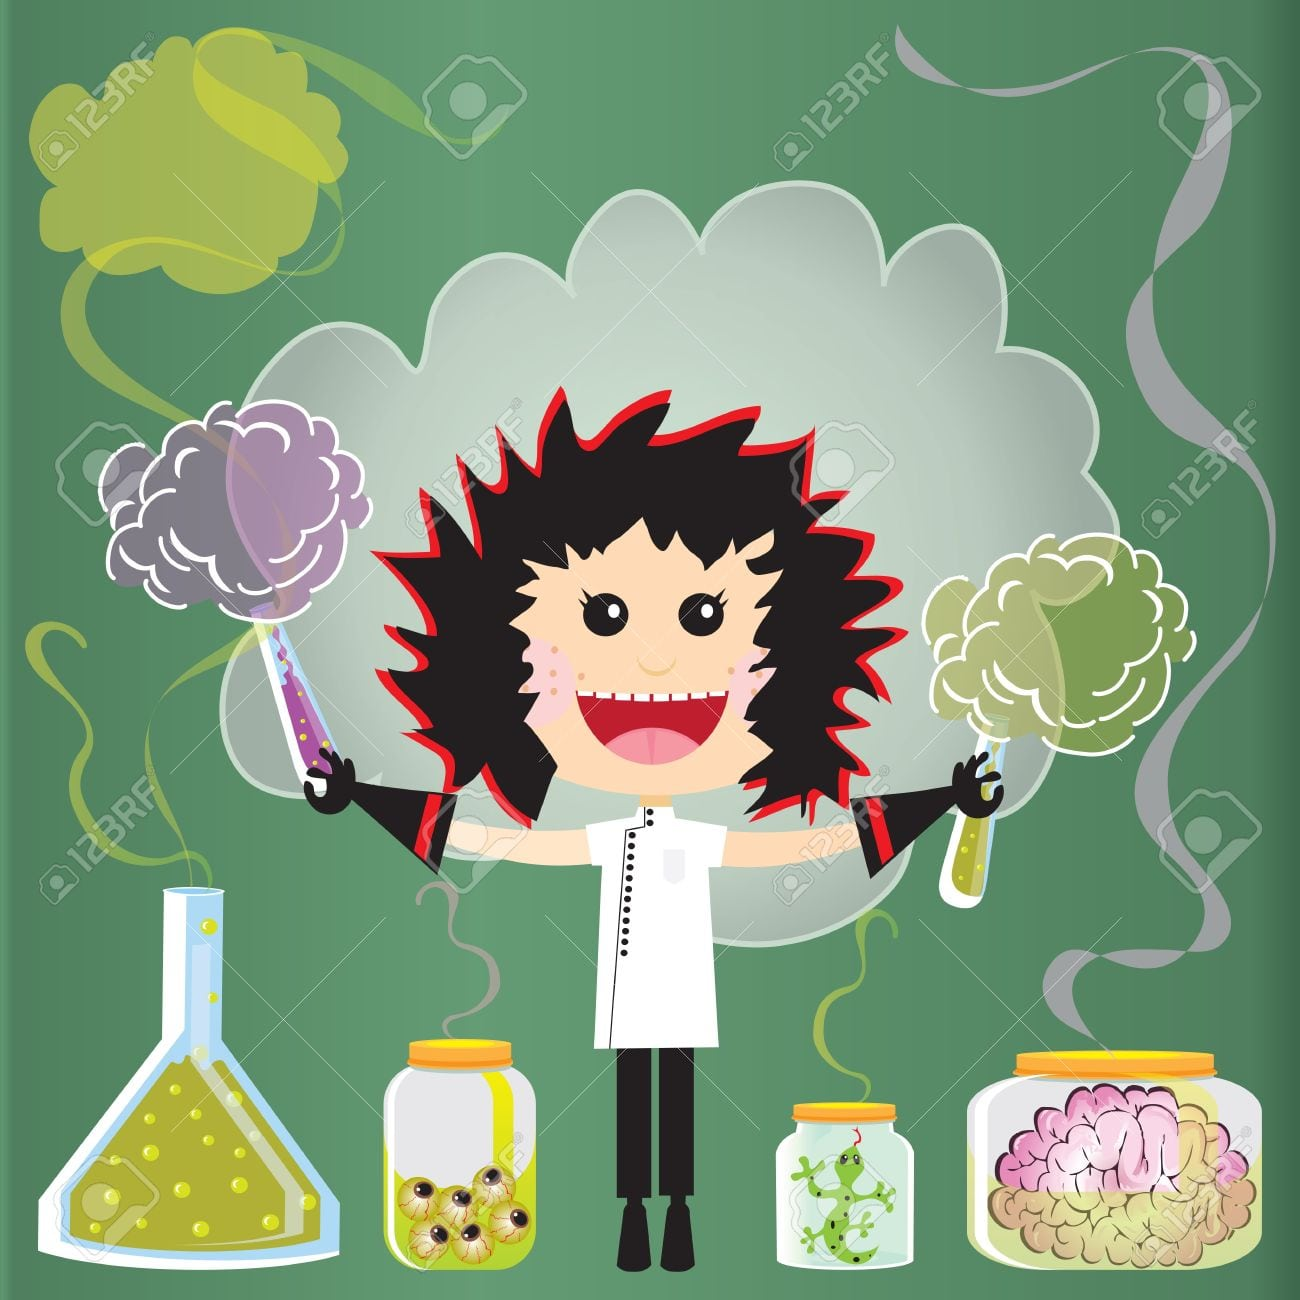 Mad Scientist Birthday Party Invitations  Puffs Of Smoke And